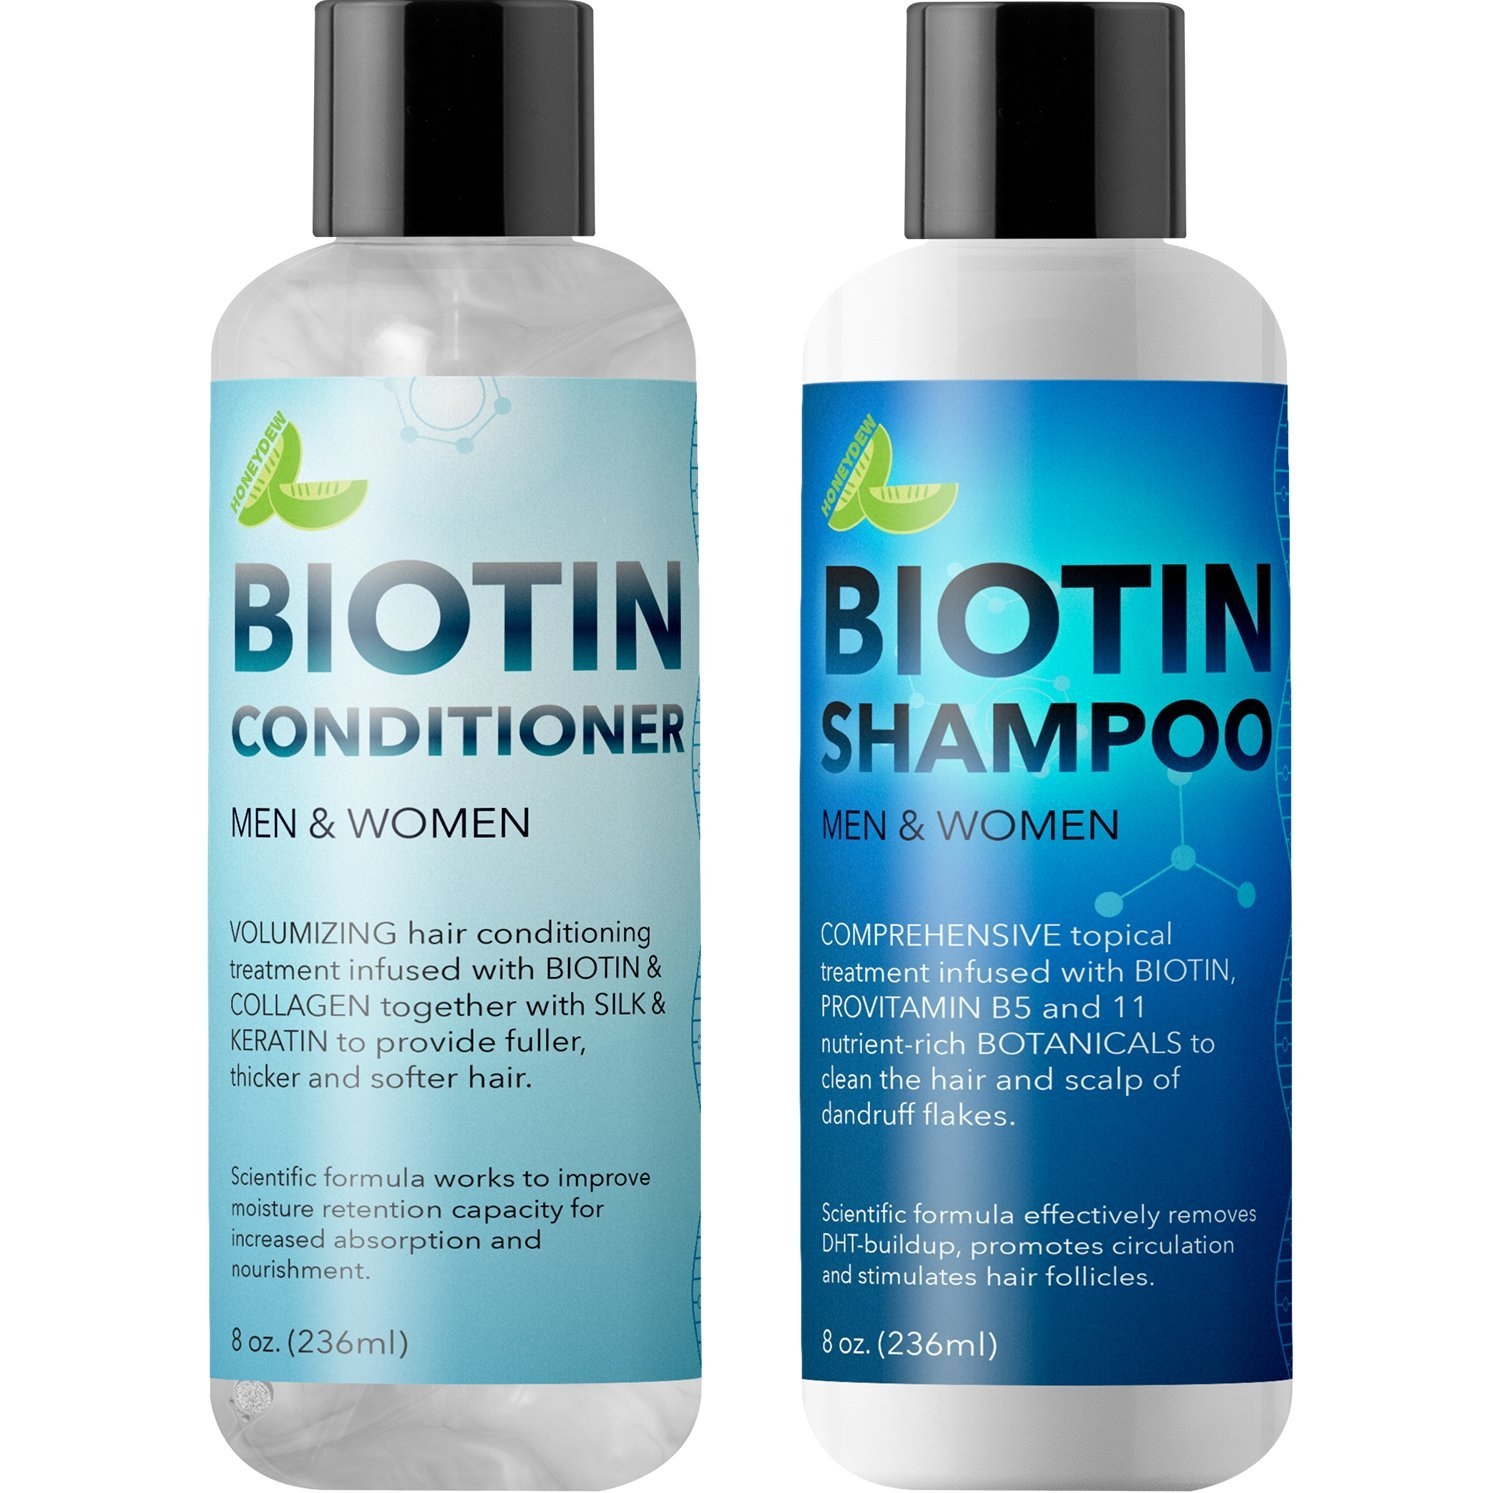 Biotin Shampoo and Conditioner Hair Loss Treatment for Thinning Hair - Hair Follicle Stimulator for Fuller Thicker Hair Growth - Revive Damaged Hair with Natural Jojoba Oil Argan Oil Sea Buckthorn Maple Holistics MH-Biotin-Set-1